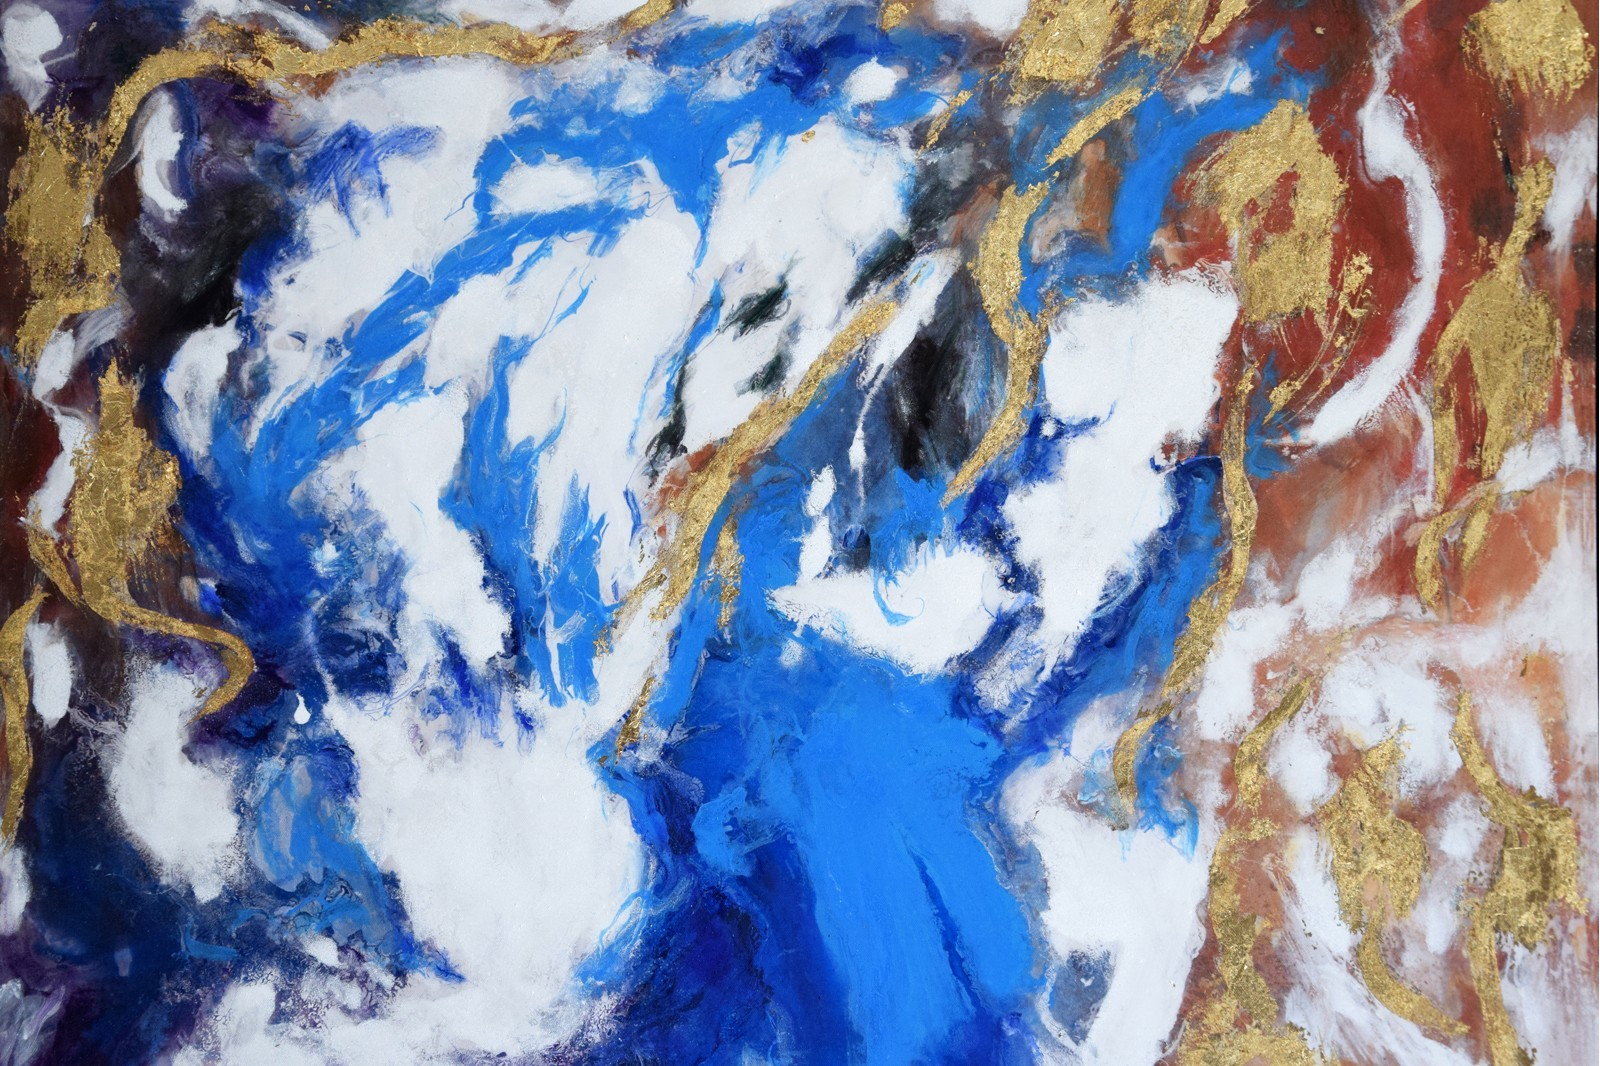 ABSTRACT PAINTING STORM N2 WITH FRAME